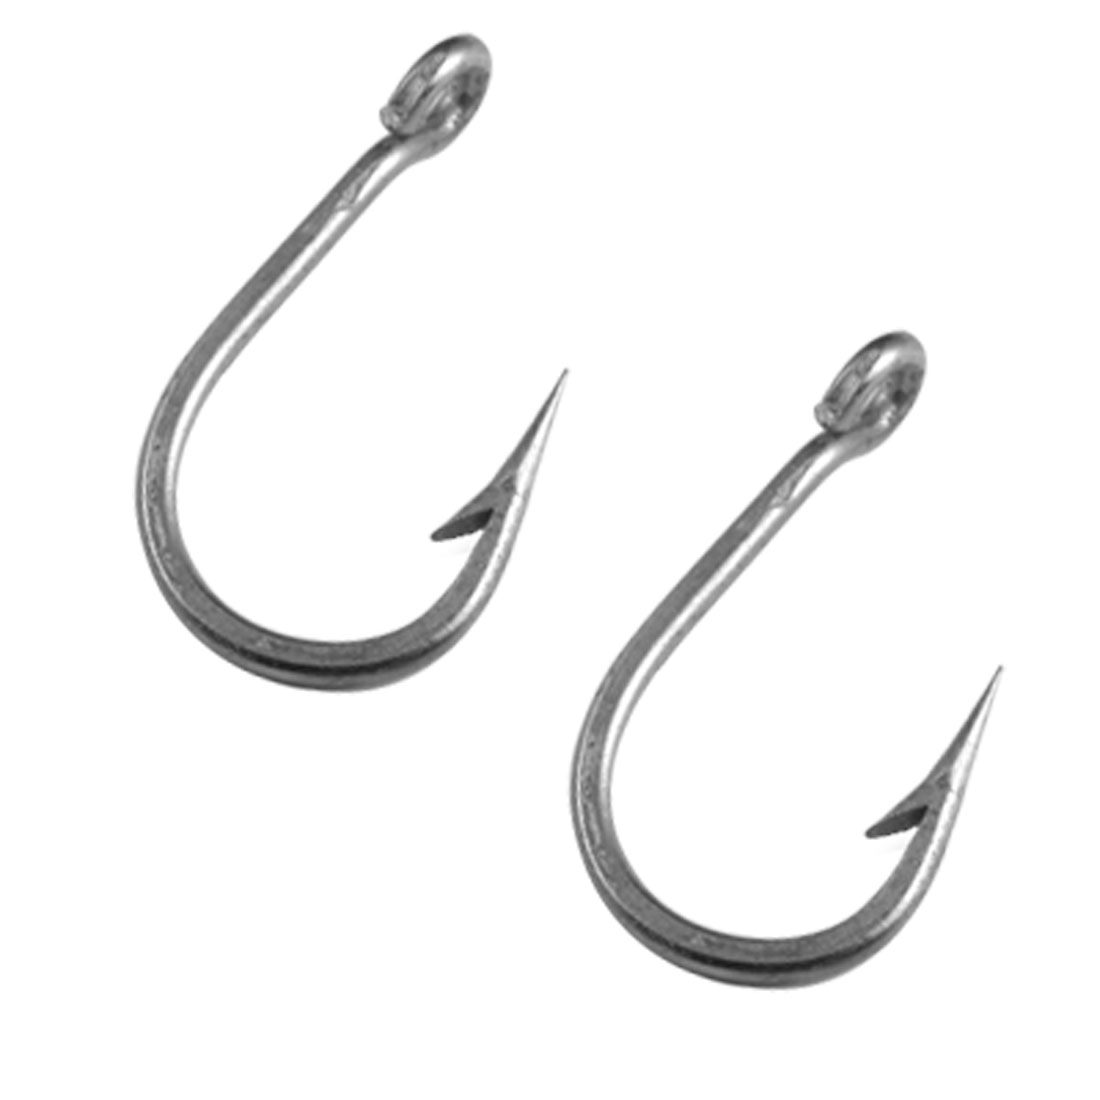 Size 8 Swordfish Series Forged Steel Big Game Trolling Fishing Hooks